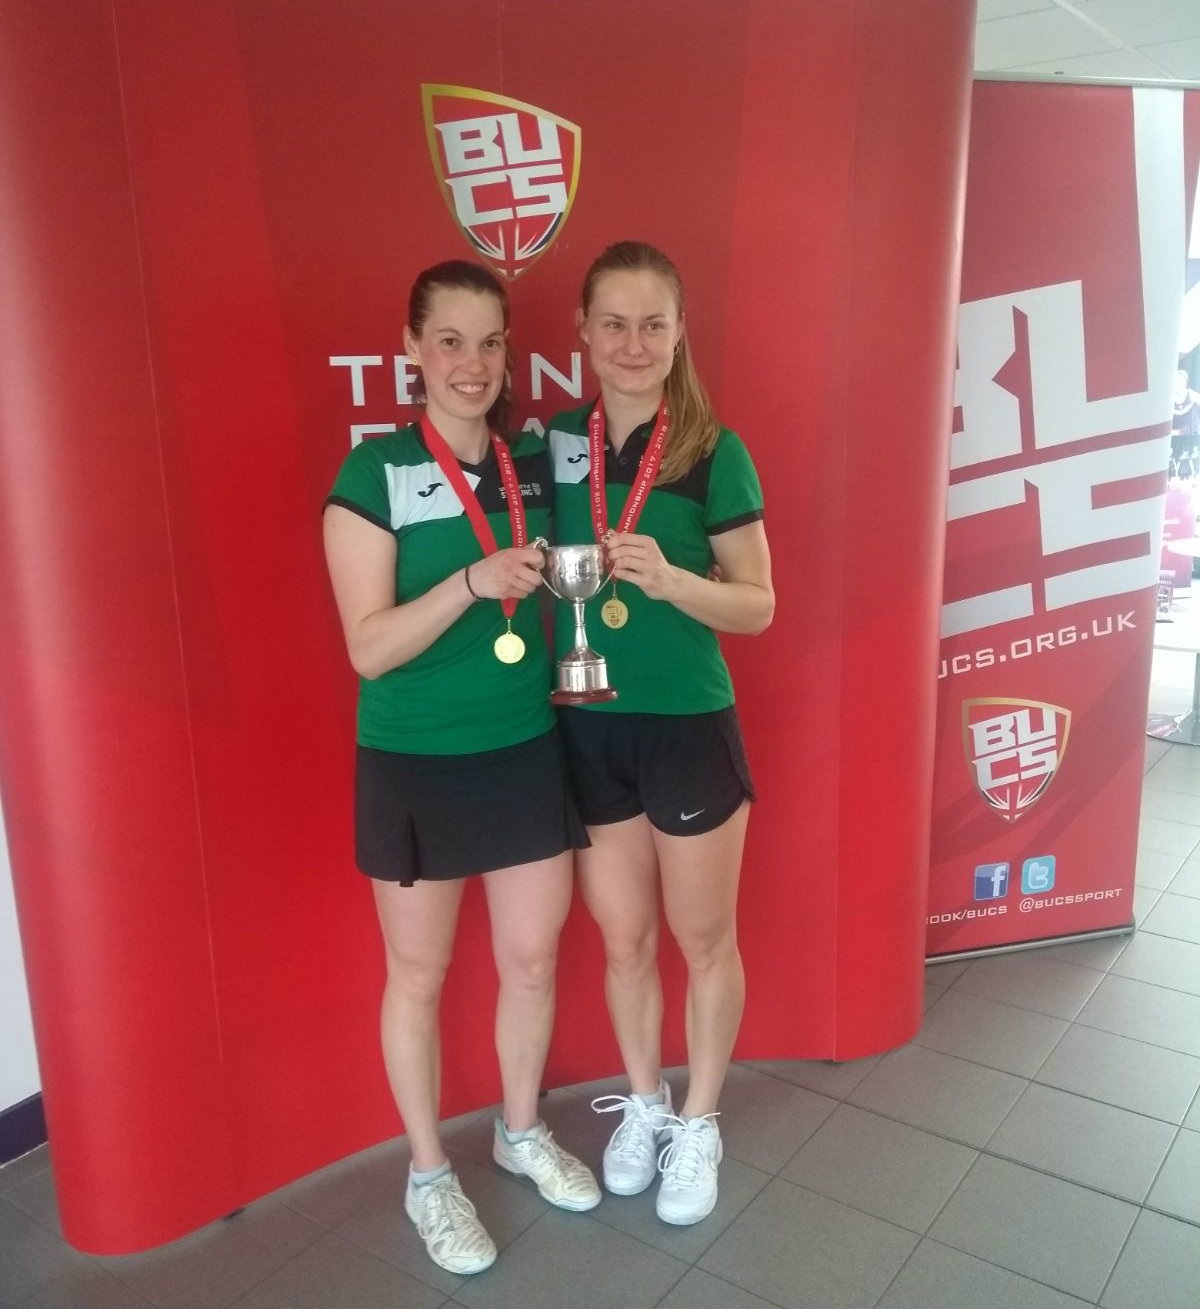 BUCS brilliance from Stirling athletes | About | University